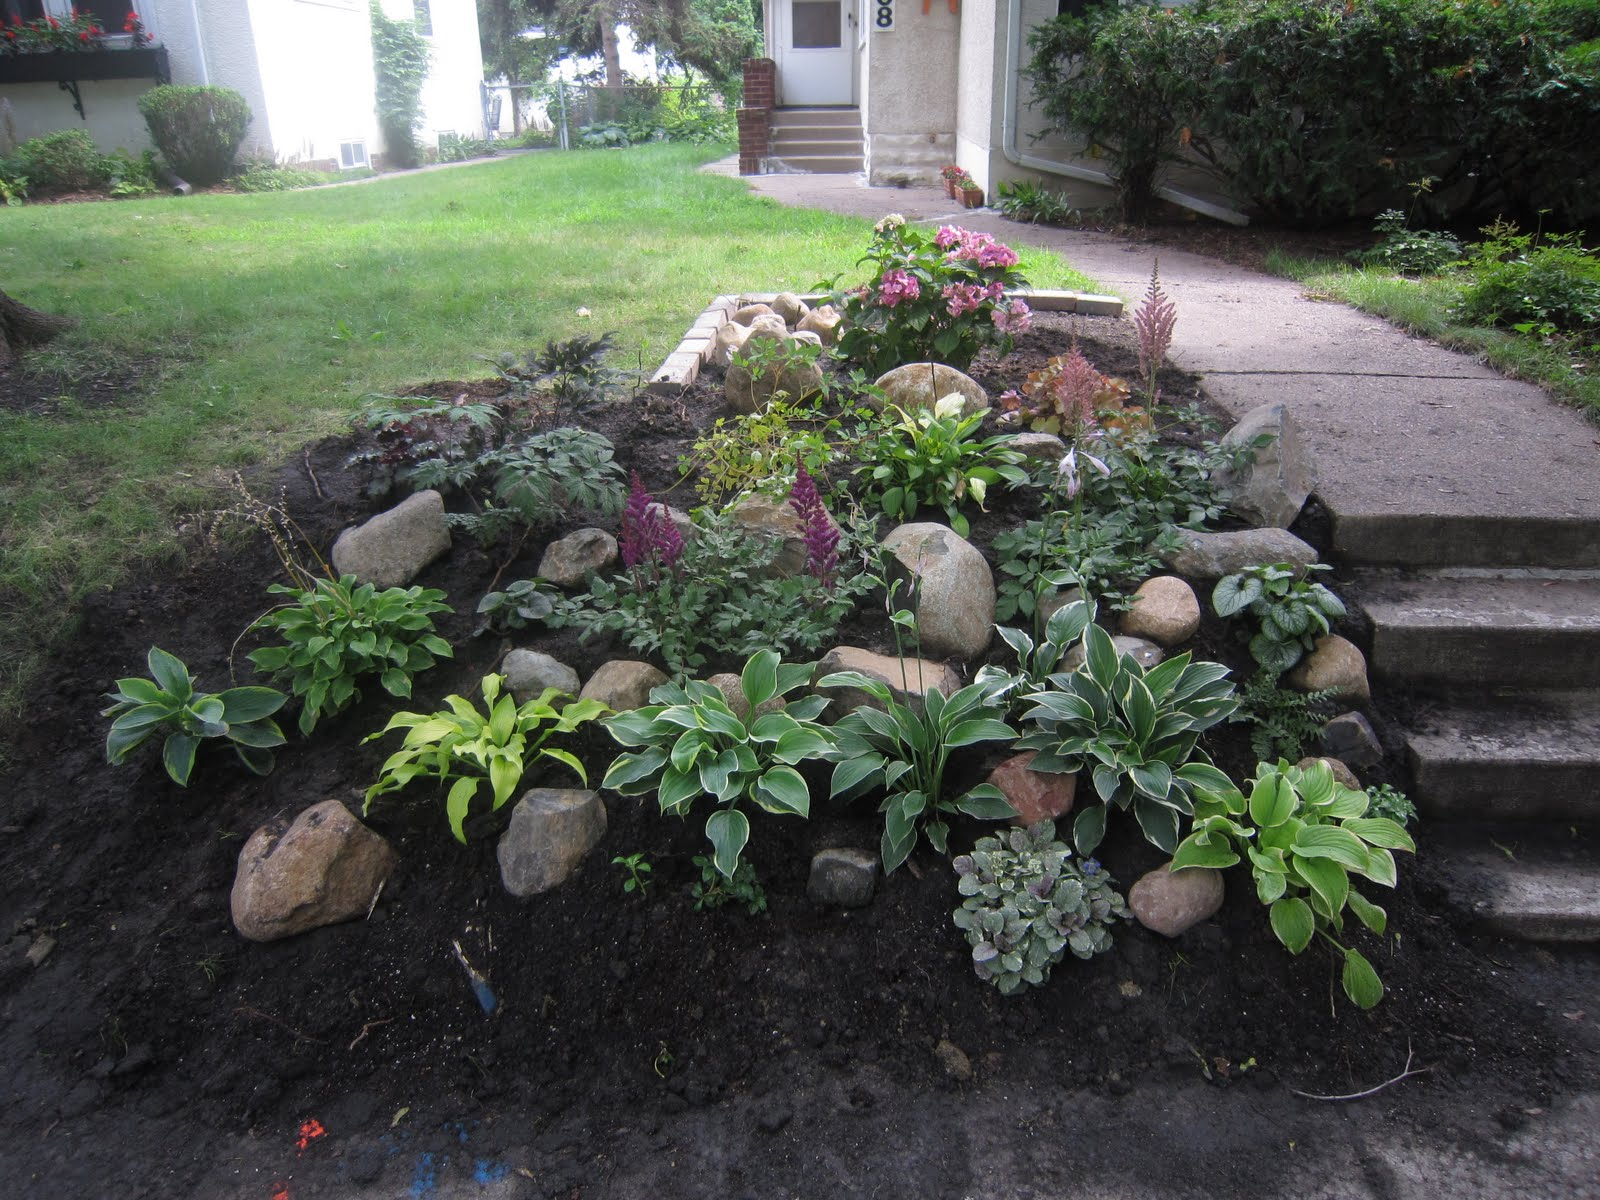 My brillian design landscaping on a hillside ideas Pictures of landscaping ideas